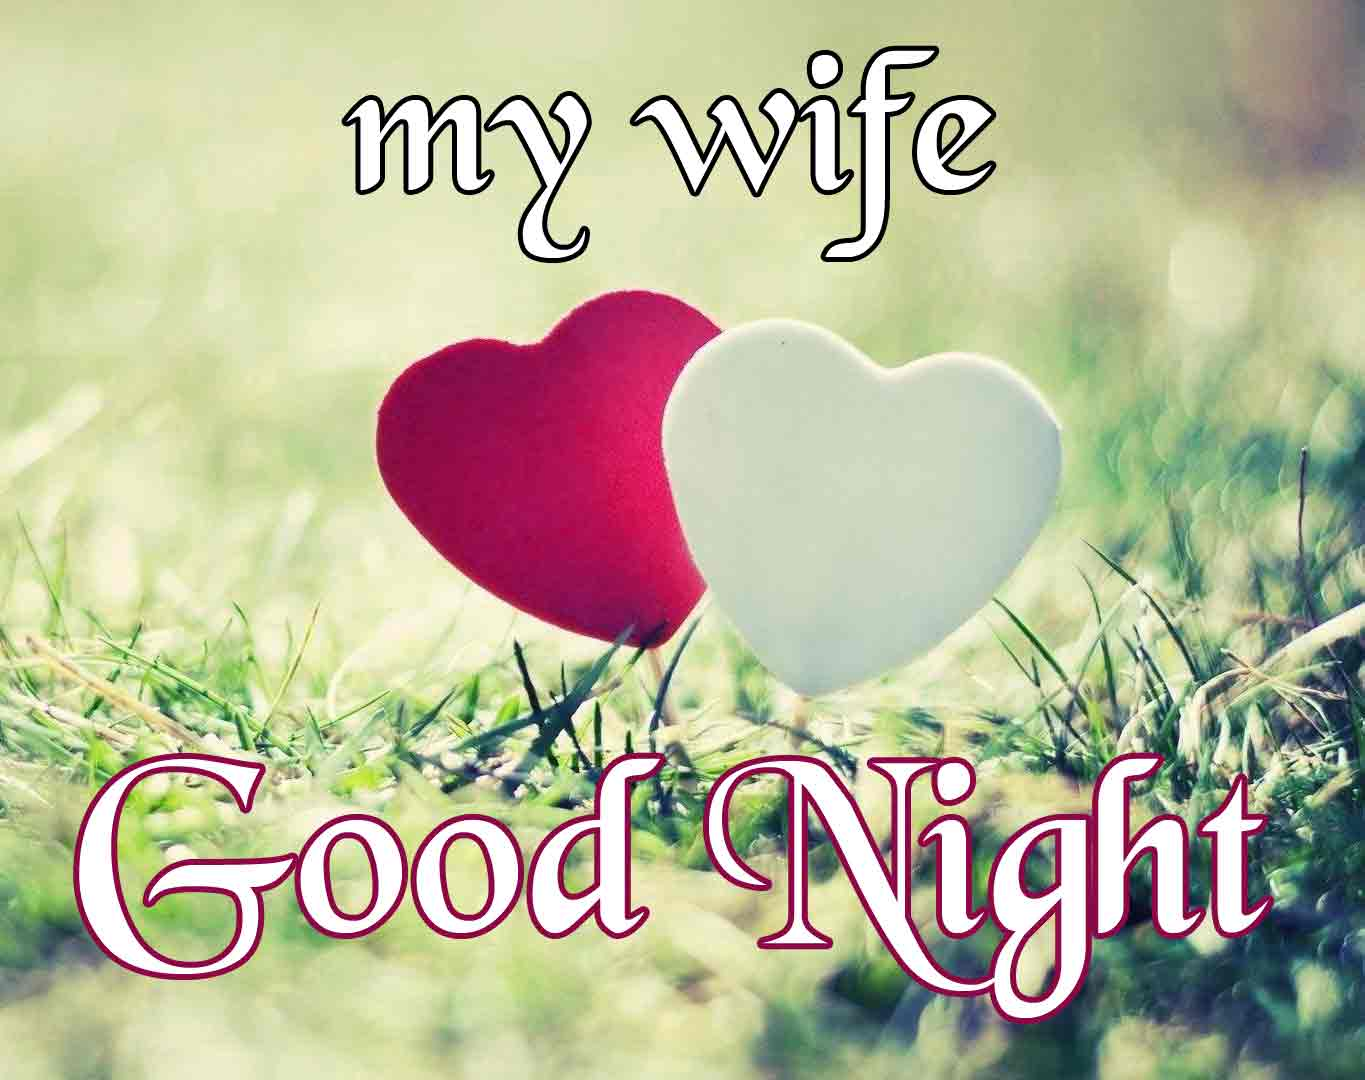 good night wallpaper 41